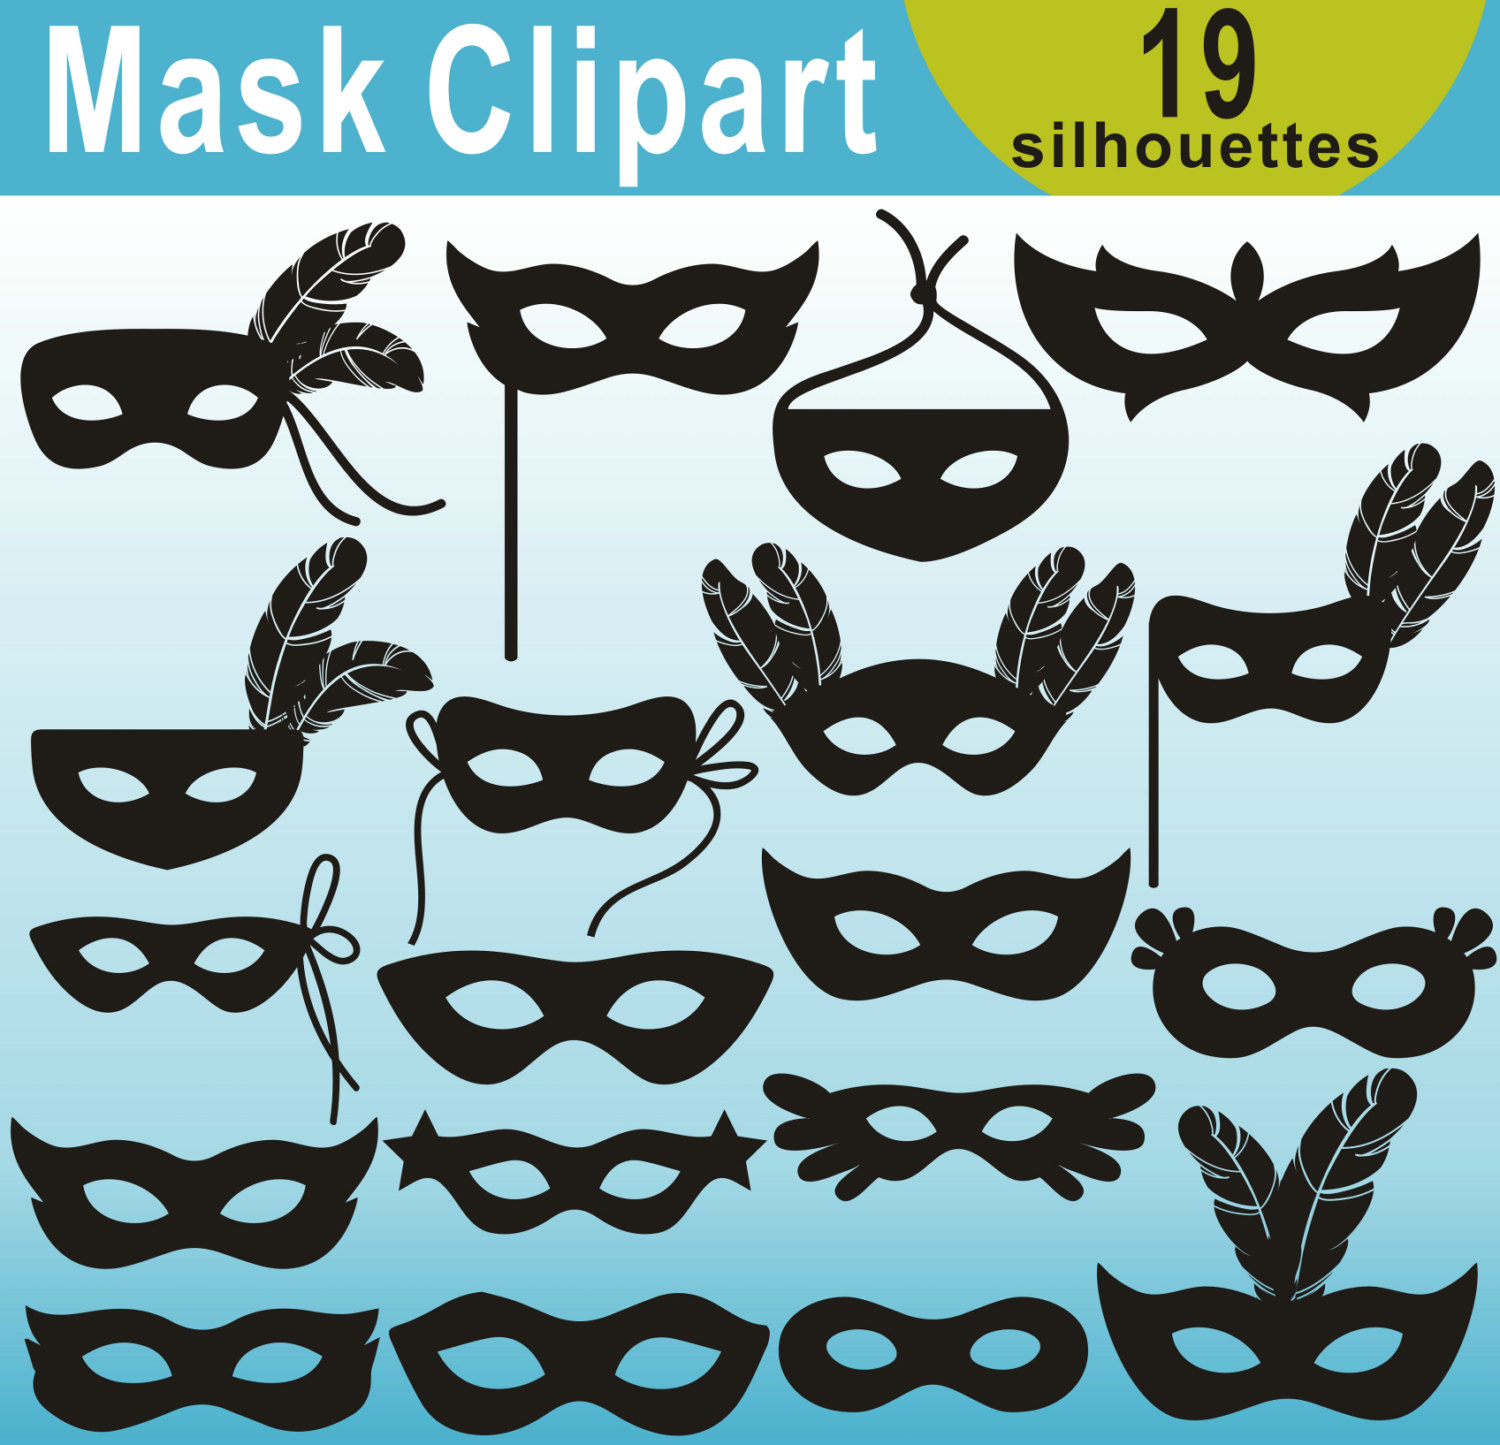 Masquerade clipart silhouette Is Mask Clipart Silhouettes Mask